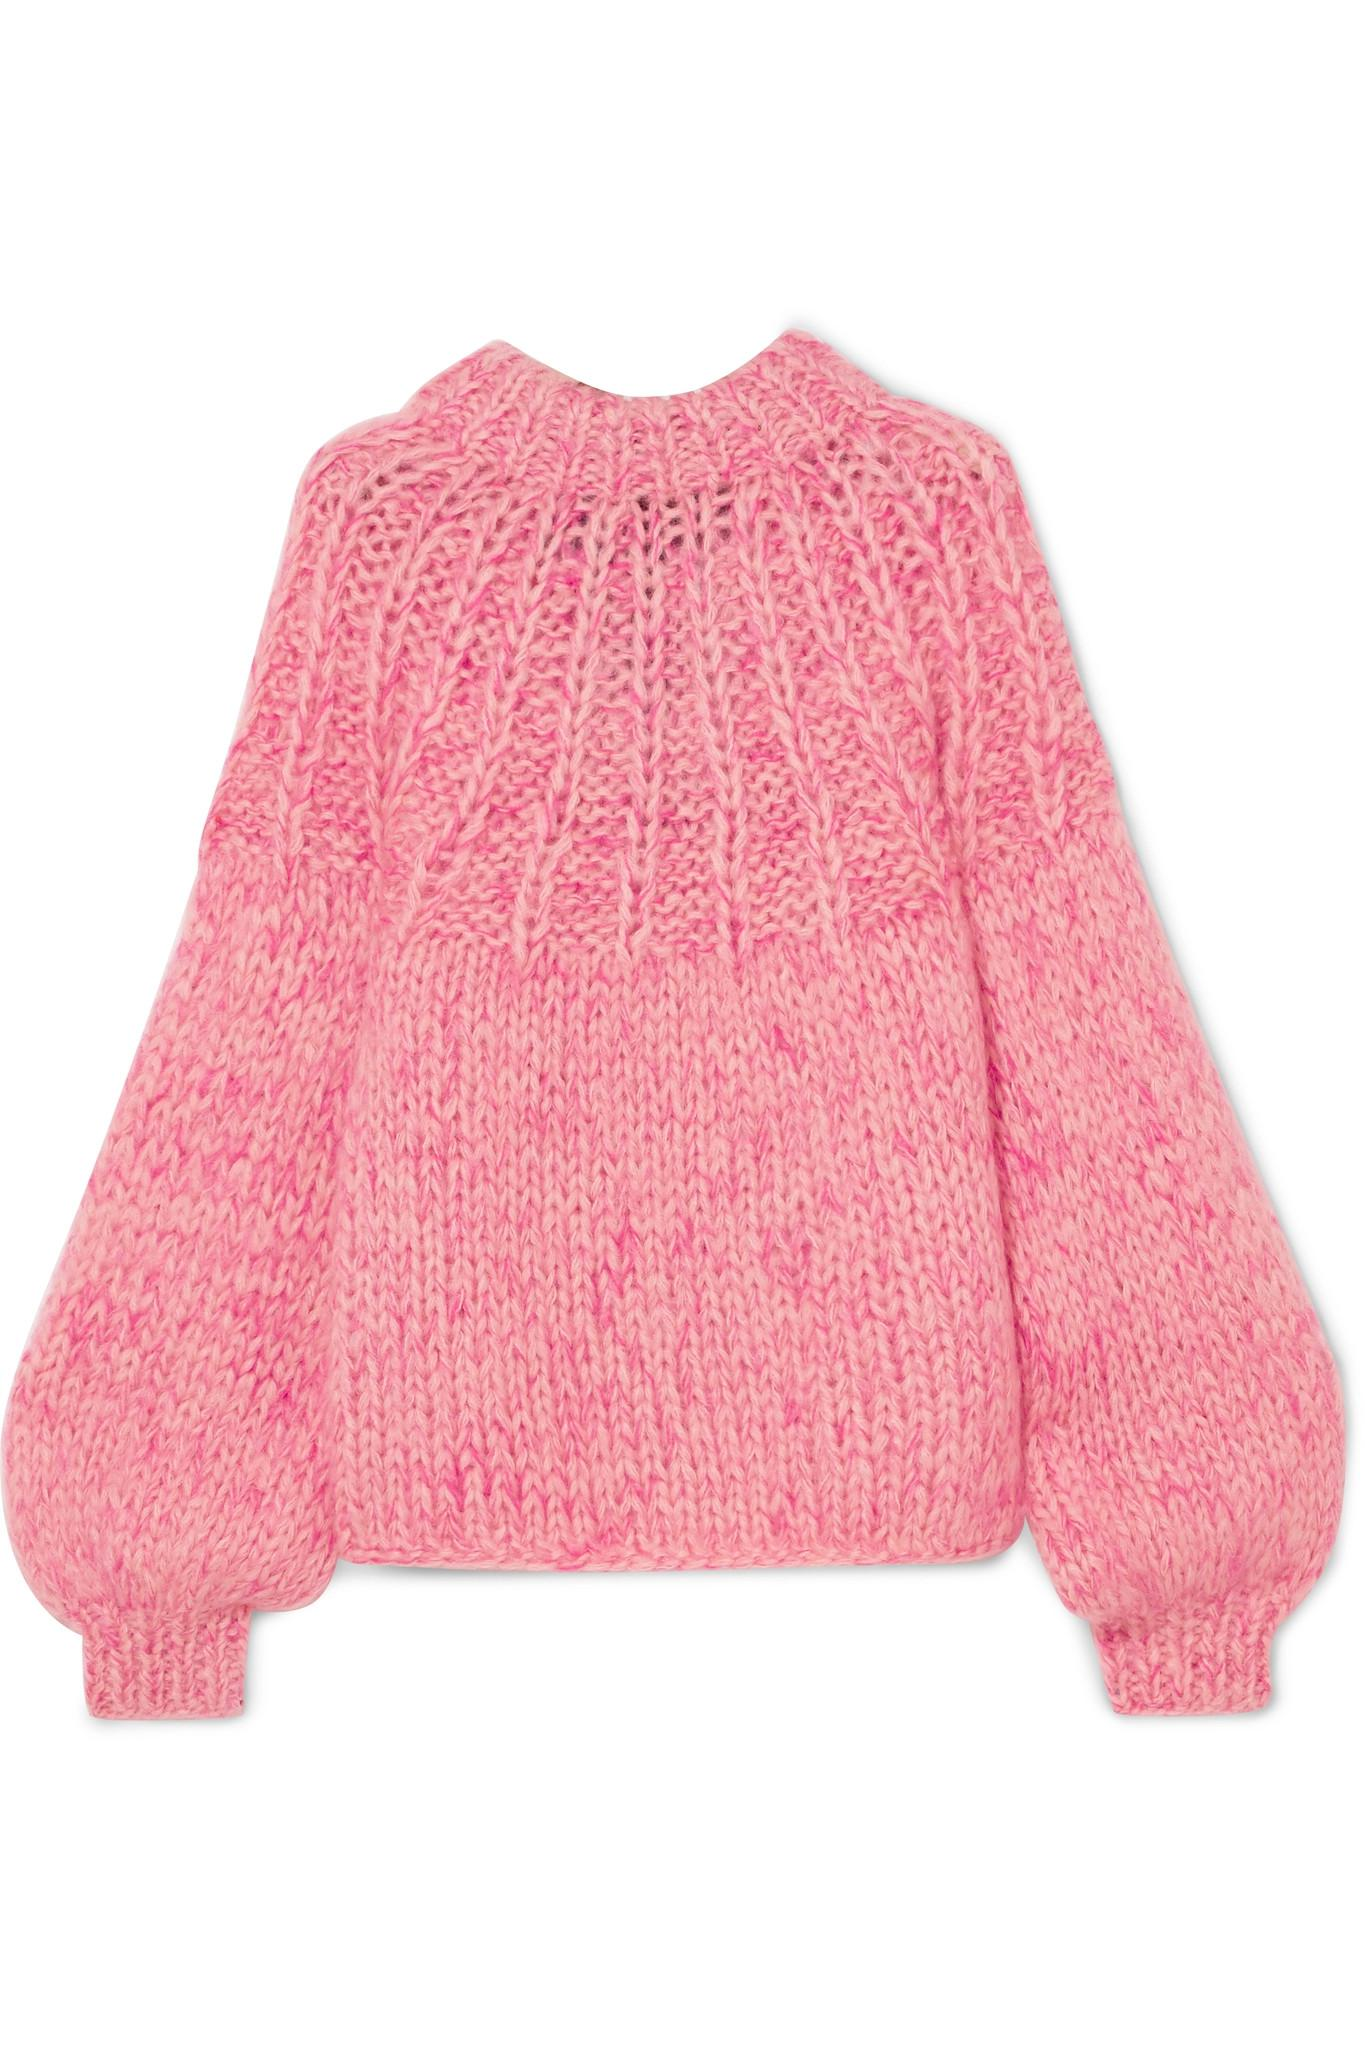 Julliard Bow-embellished Mohair And Wool-blend Sweater - Pink Ganni Free Shipping Supply Sale Online Shopping Visa Payment Cheap Price vpbO5U2jQh